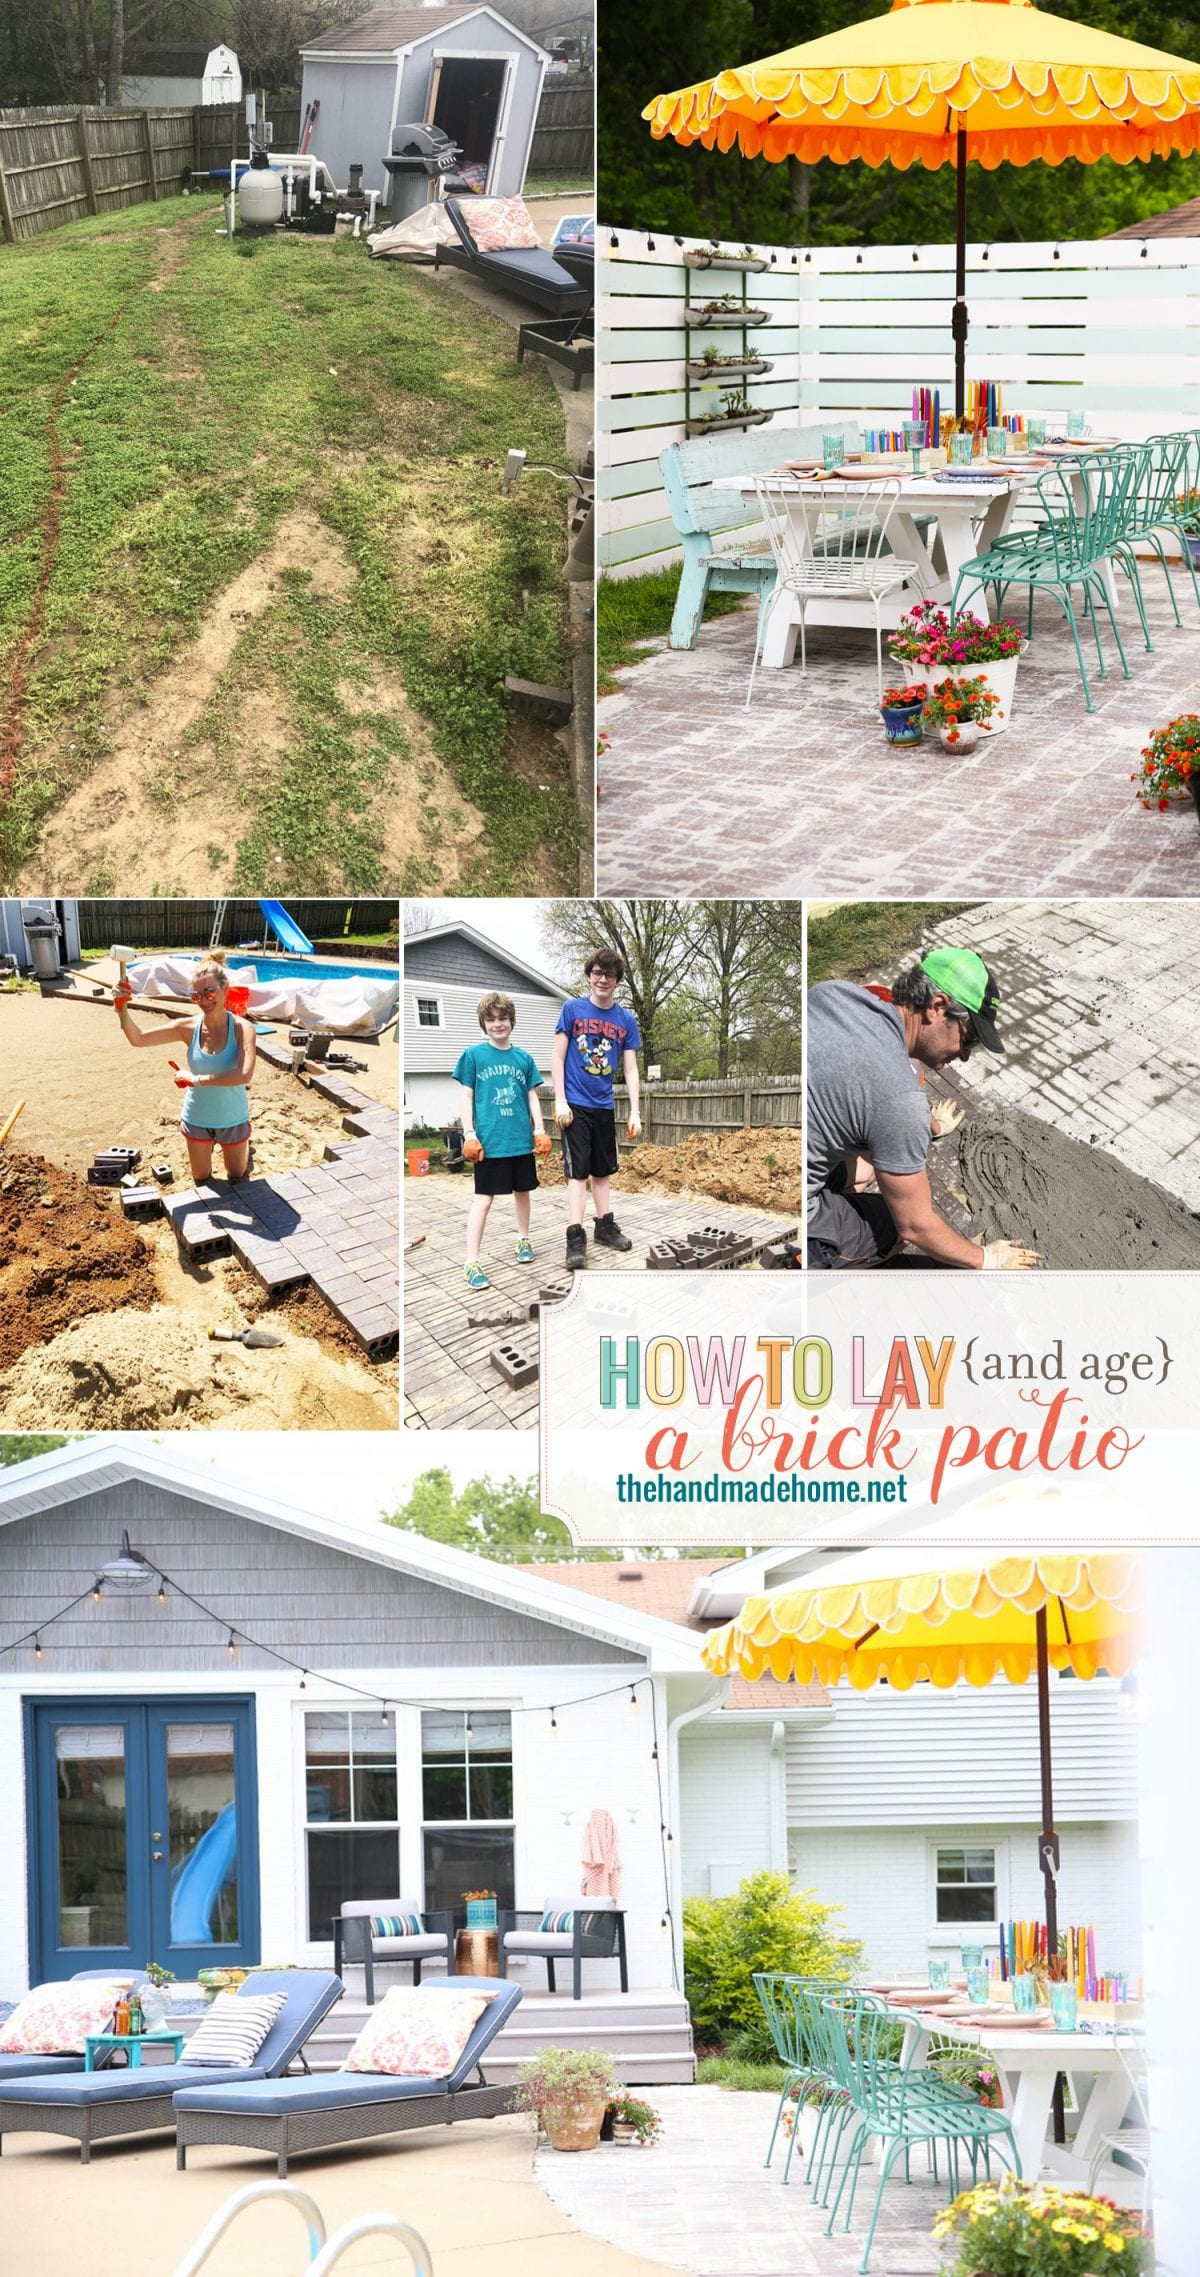 how to lay a brick patio